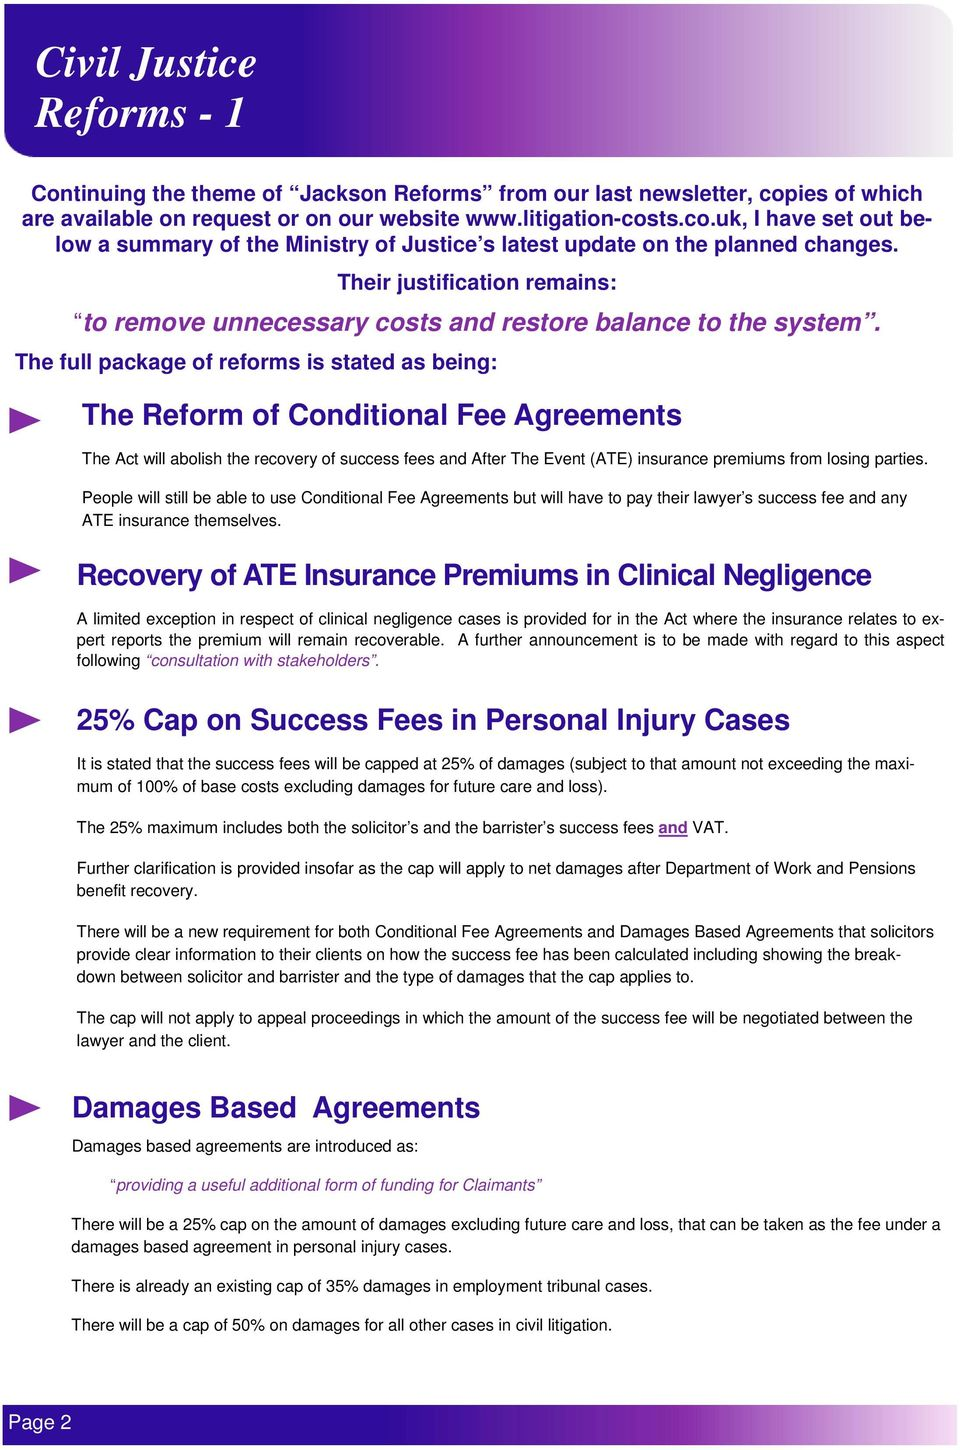 The full package of reforms is stated as being: The Reform of Conditional Fee Agreements The Act will abolish the recovery of success fees and After The Event (ATE) insurance premiums from losing